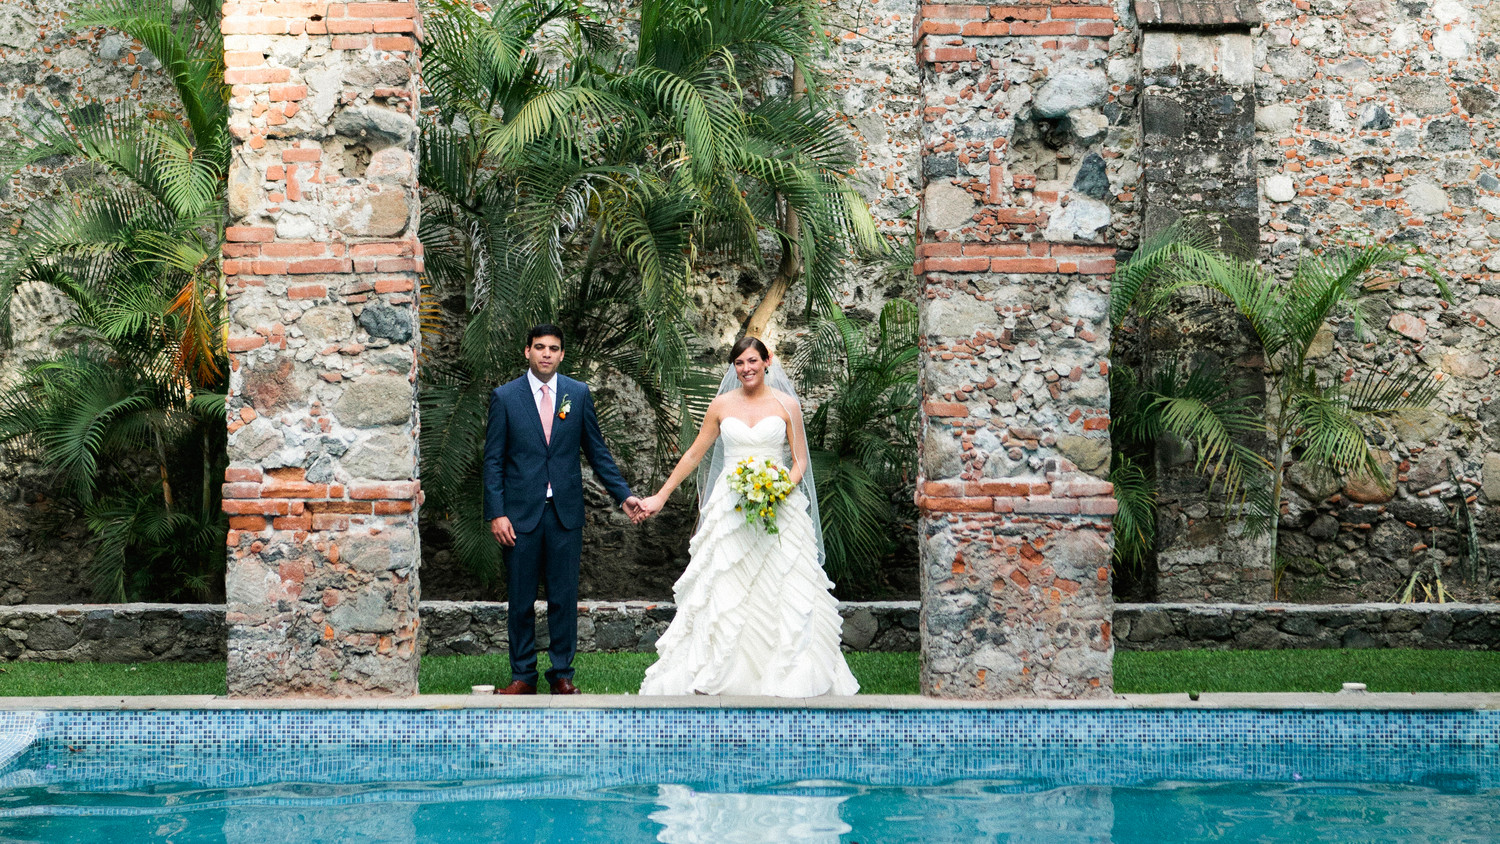 Martha Stewart Weddings: 30 Fun Ideas For A Poolside Wedding